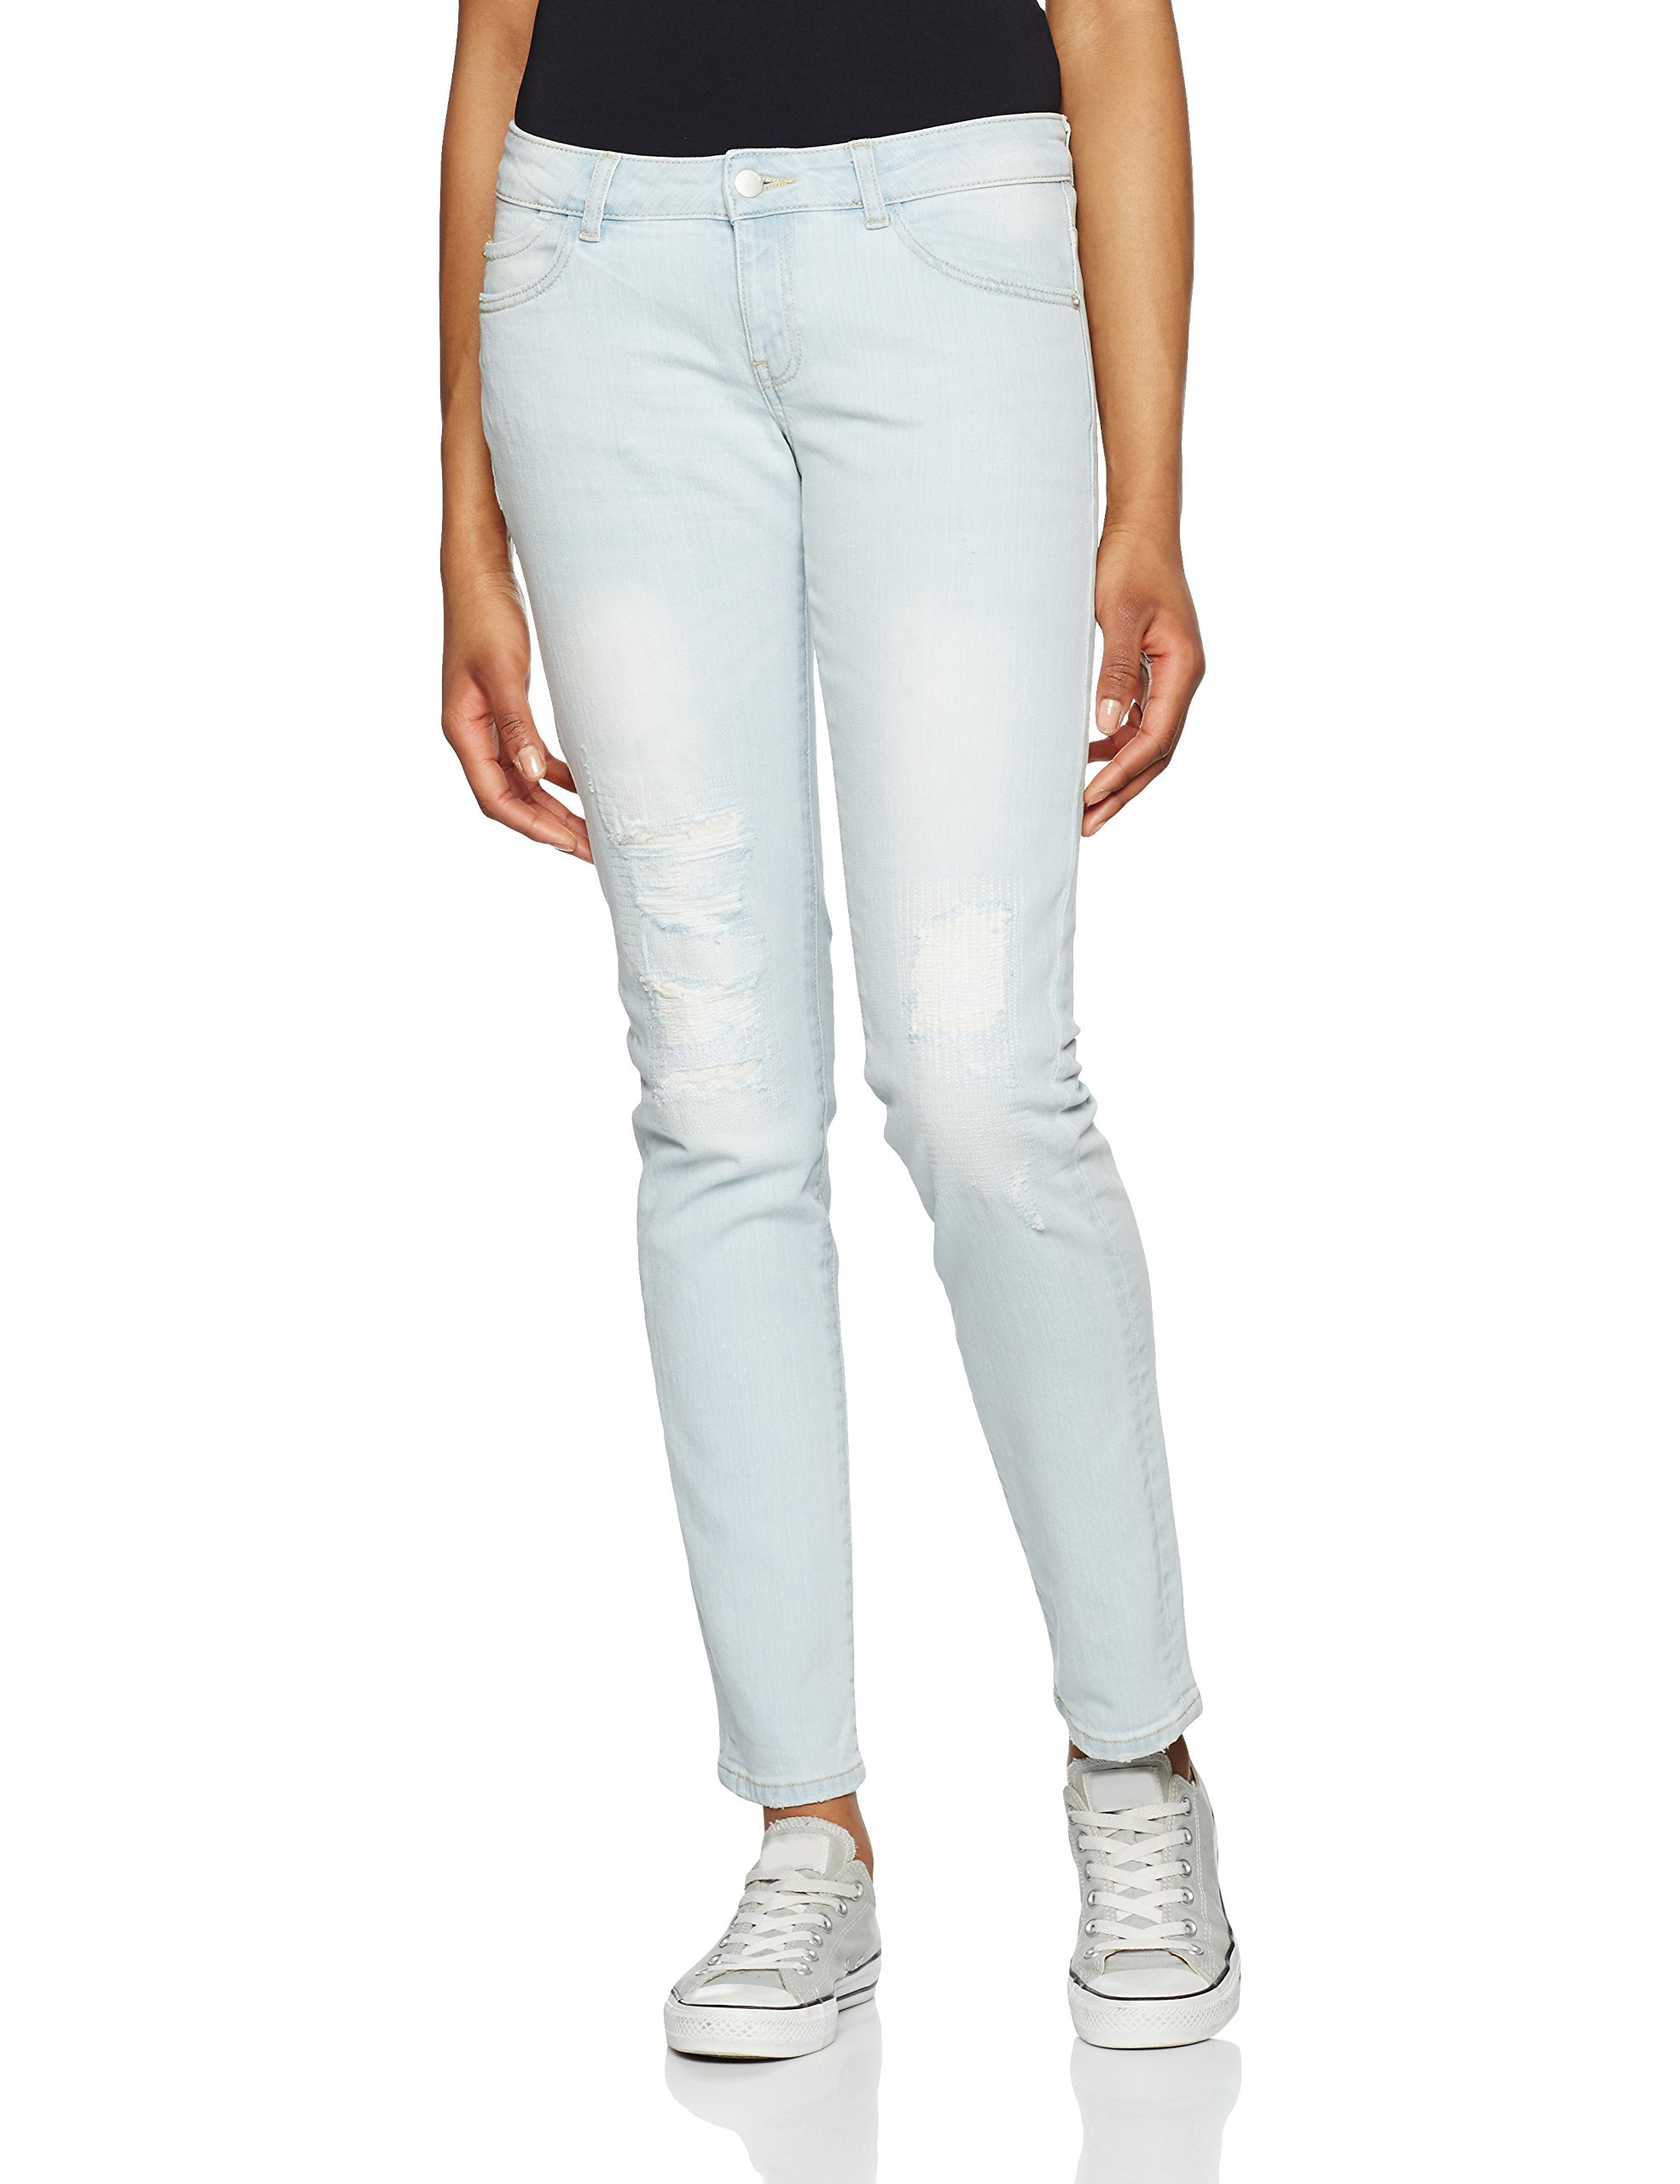 Designed 52z9W34 32 DenimTinted Femme Q s By 41703712546 JeansBlue hQrtsdC